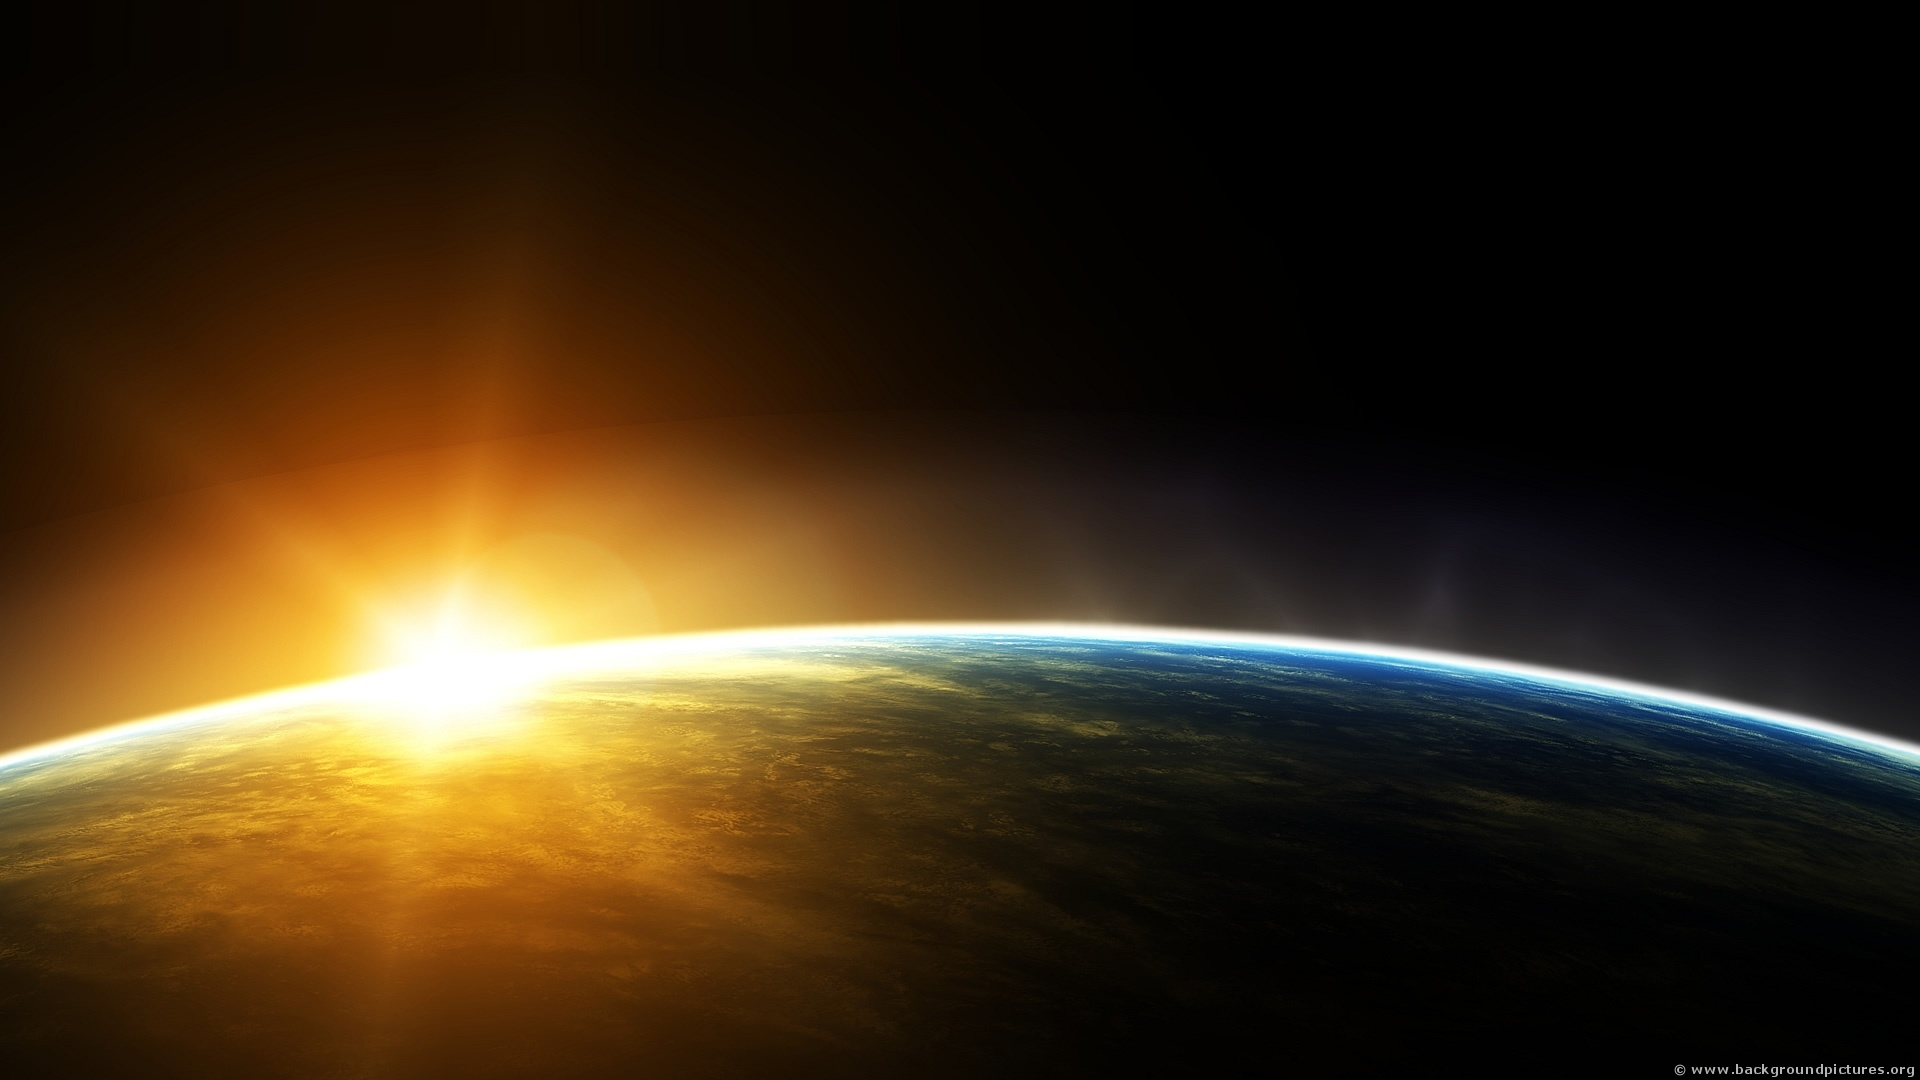 Image: http://www.desktopwallpaperhd.net/wallpapers/3/c/space-horizon-35884.jpg